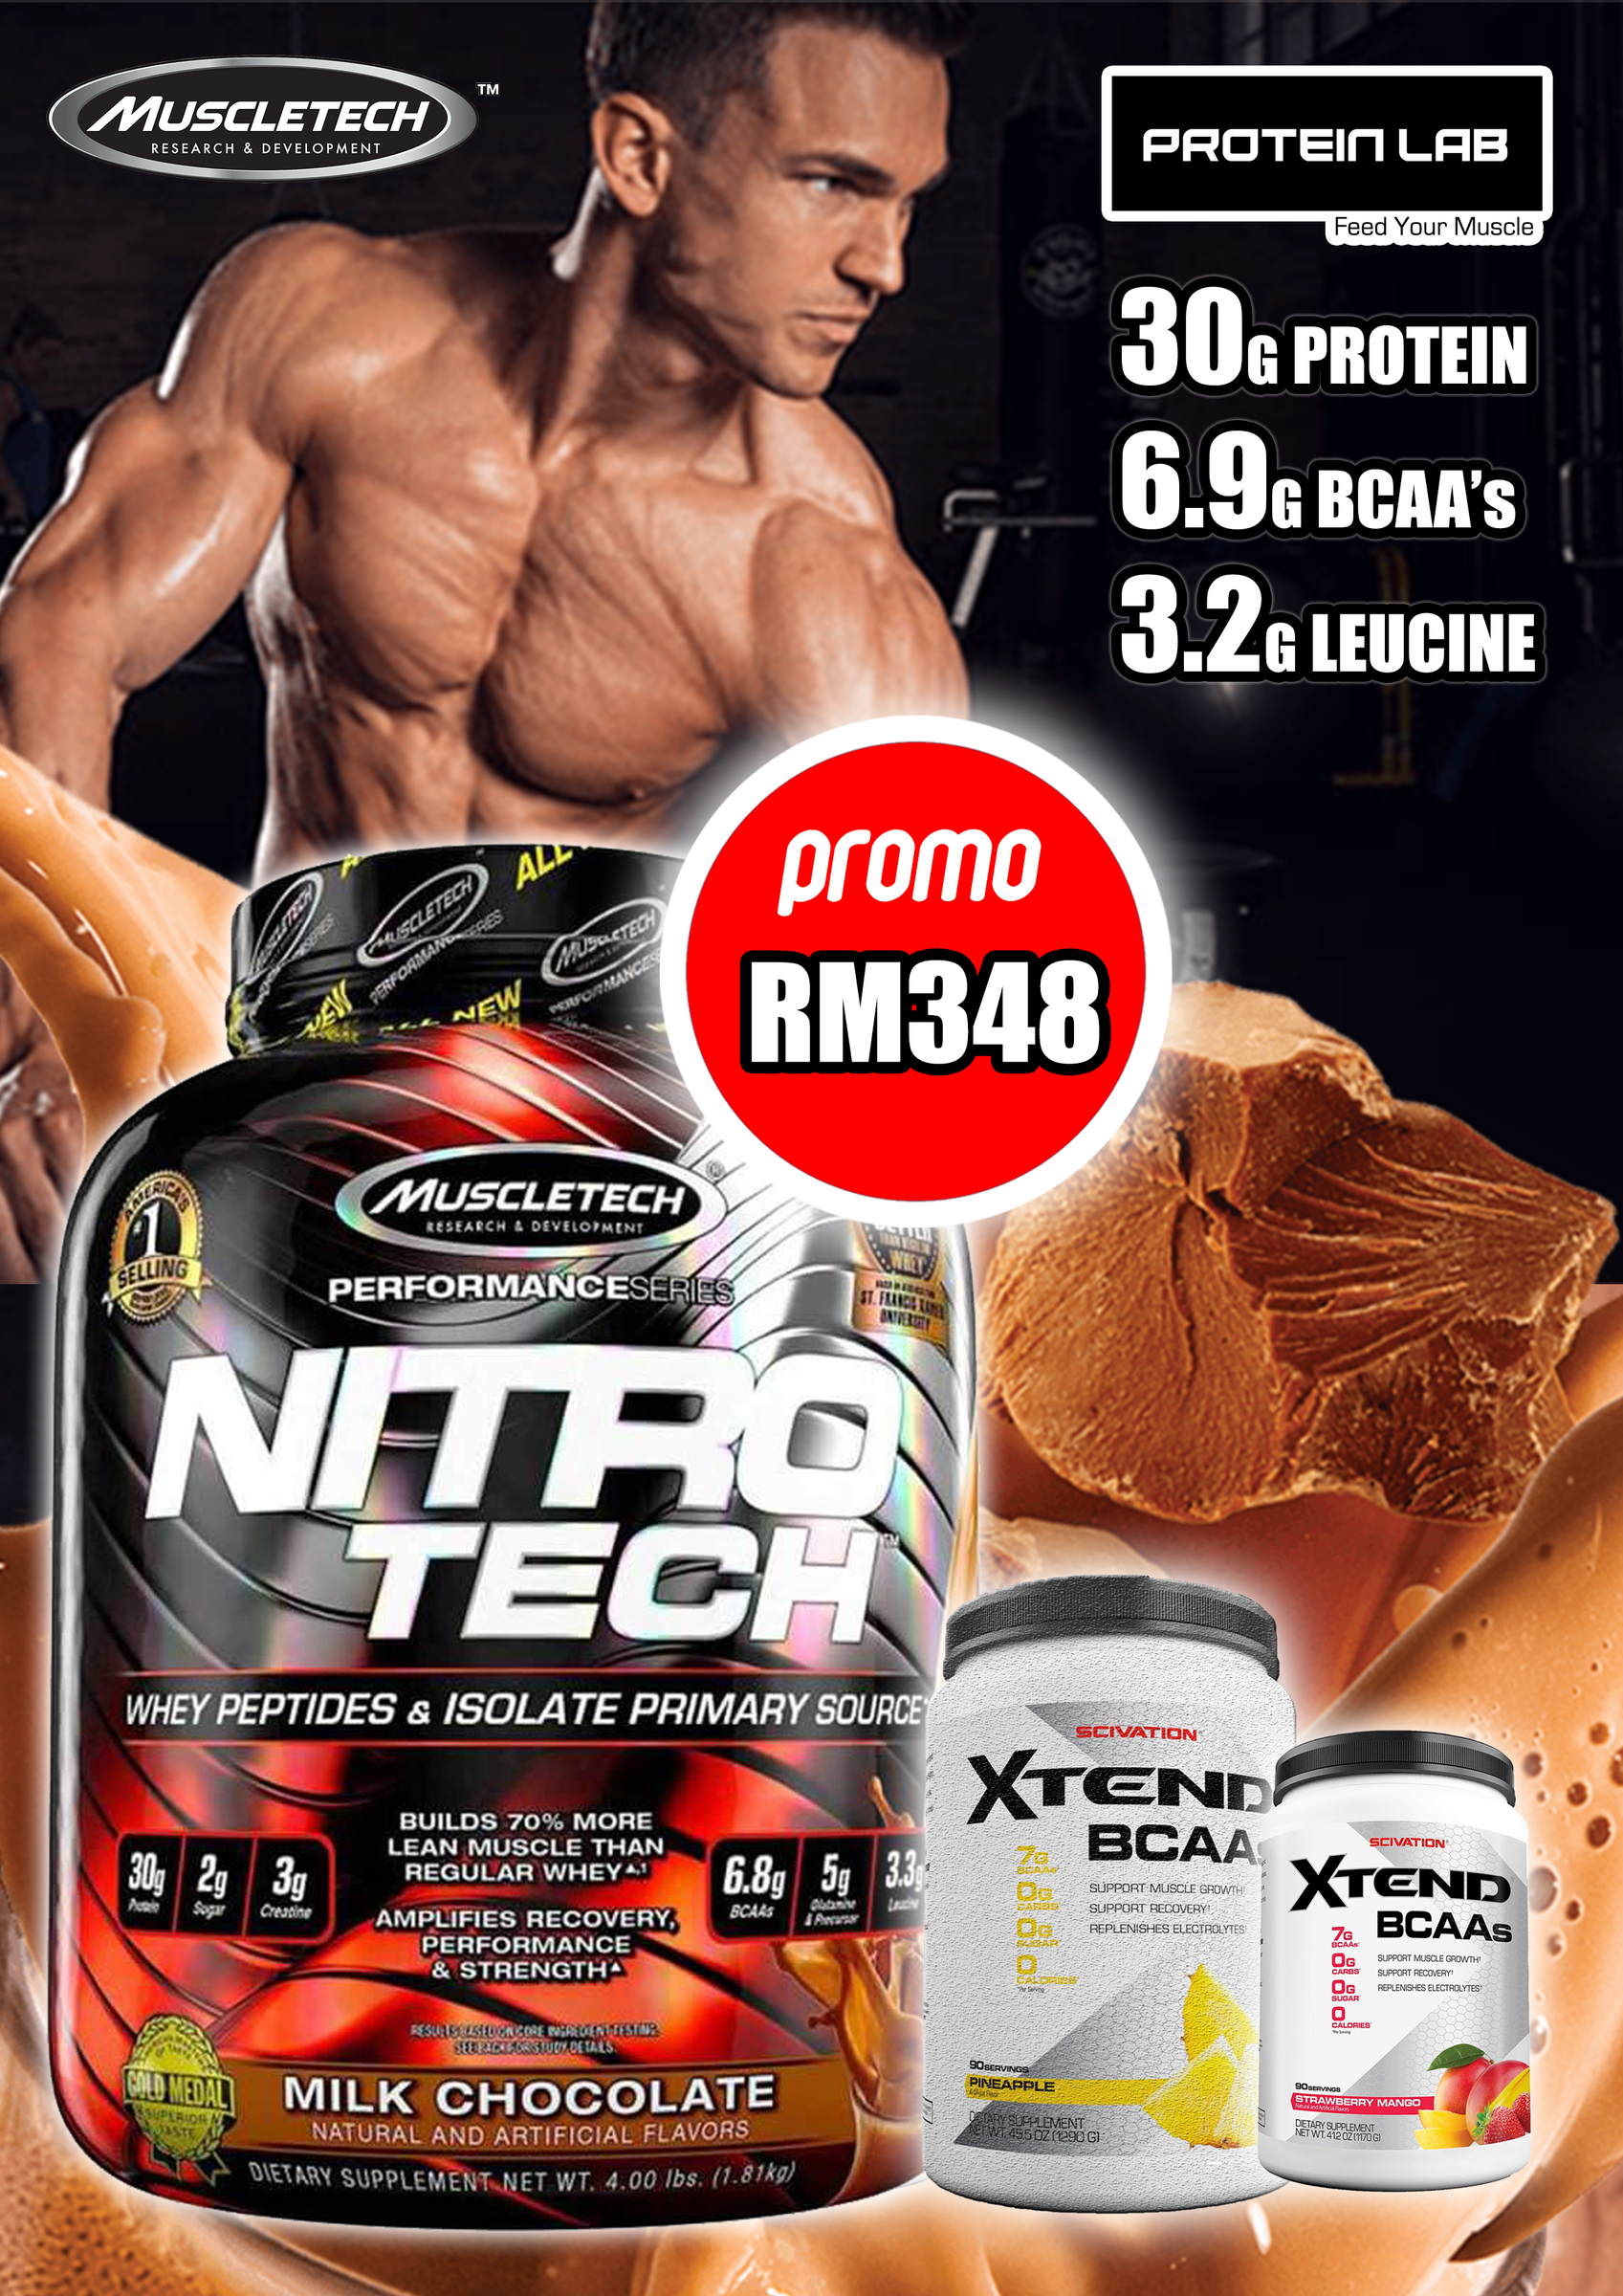 nitrotechbcaa.png